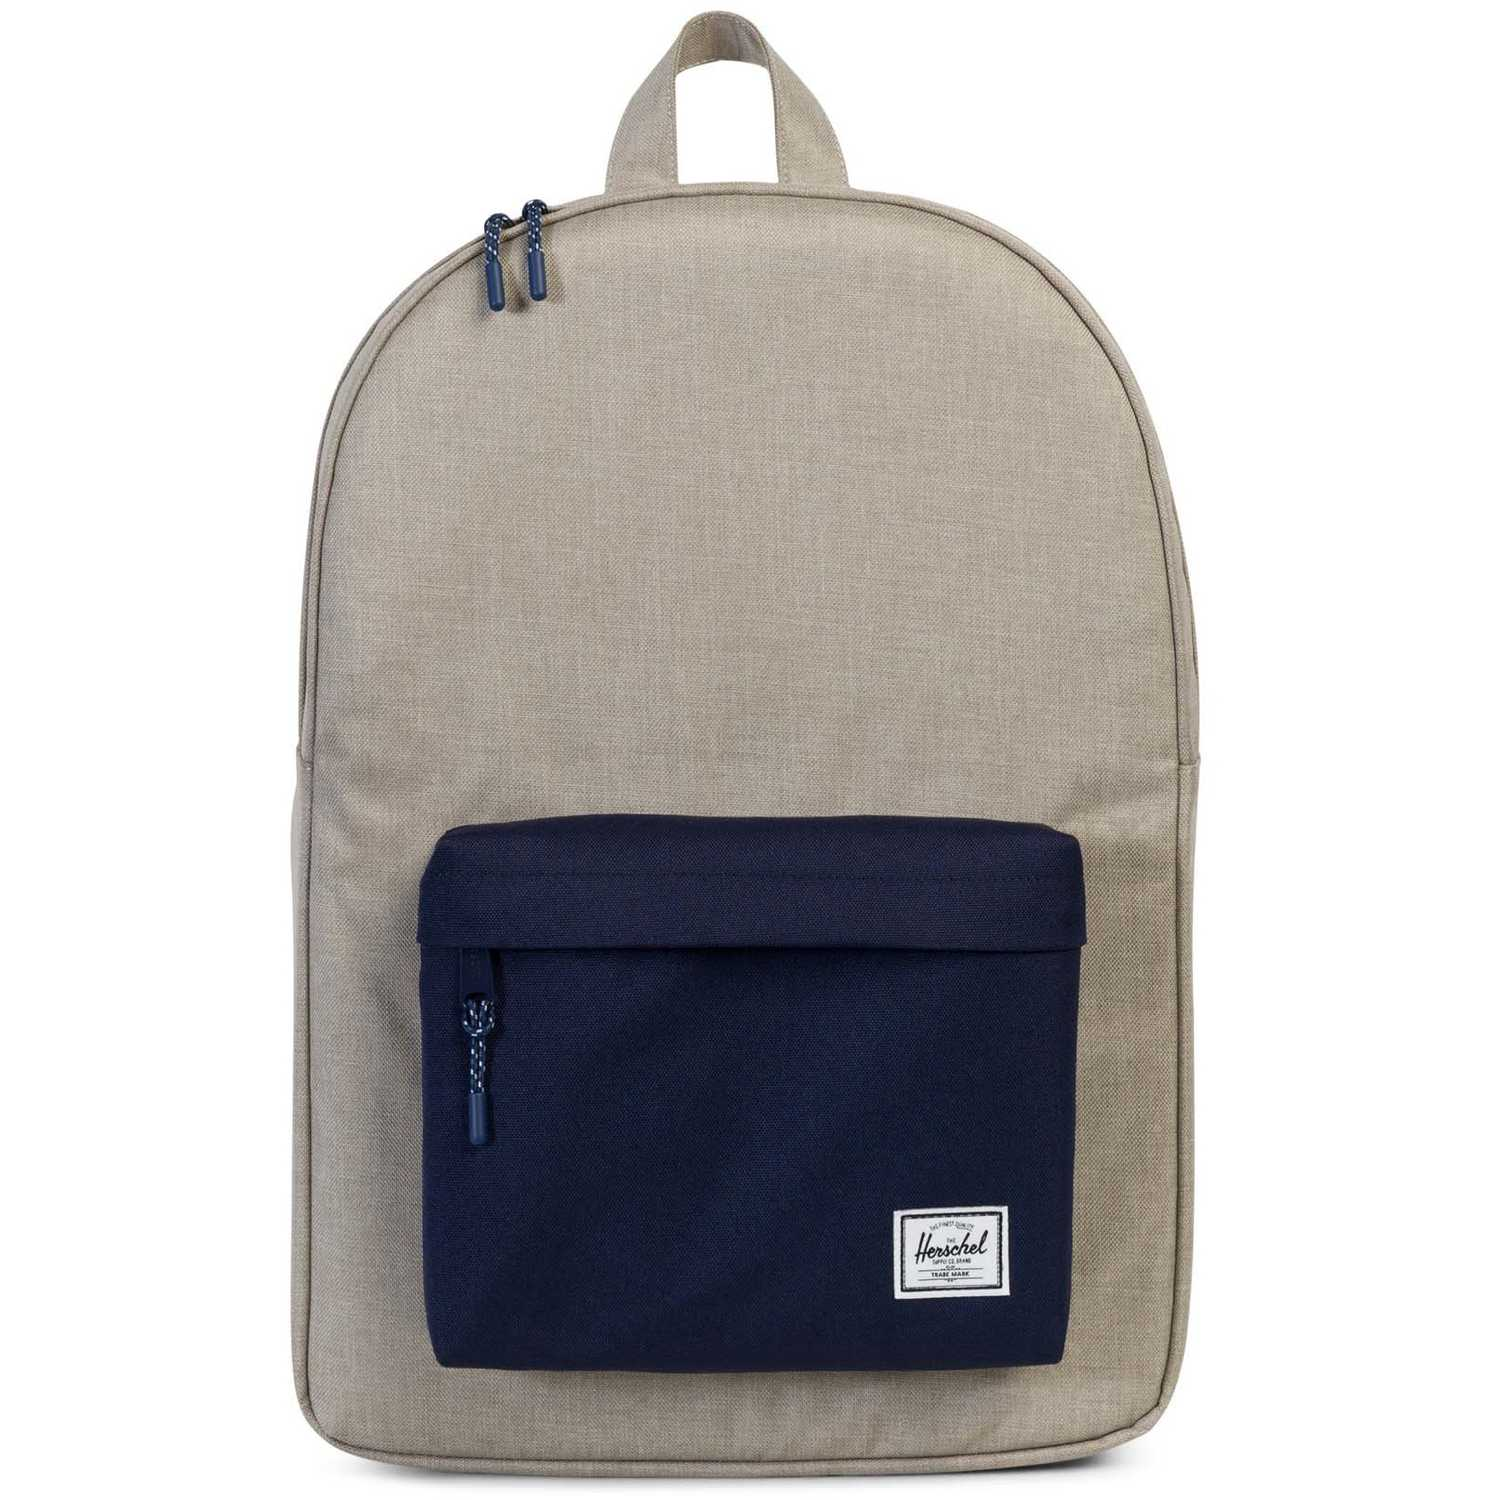 HERSCHEL classic light khaki bp Blanco / azul Mochilas Multipropósitos